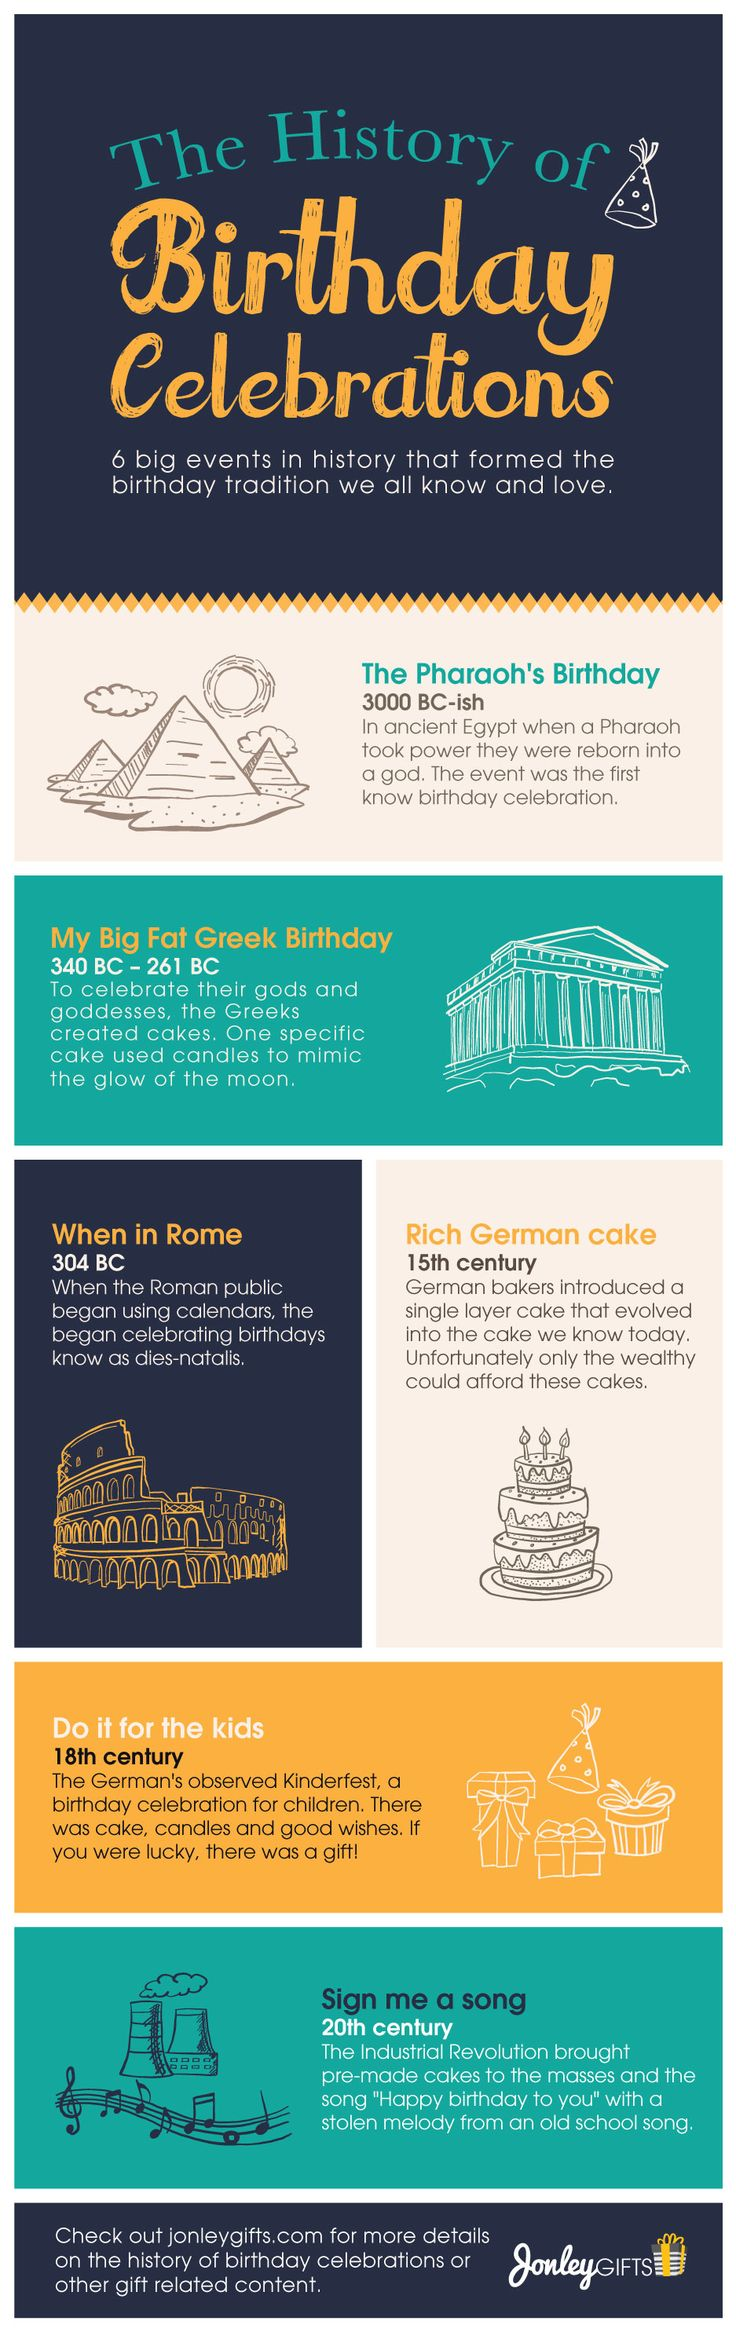 Every year we celebrate our birthdays with delicious cake, colorful candles and gifts from friends and family. Have you every wondered why? Here are the 6 big events that tell the history of birthday celebrations from early Egypt to modern day. Get the facts and see just who invented the birthday tradition.